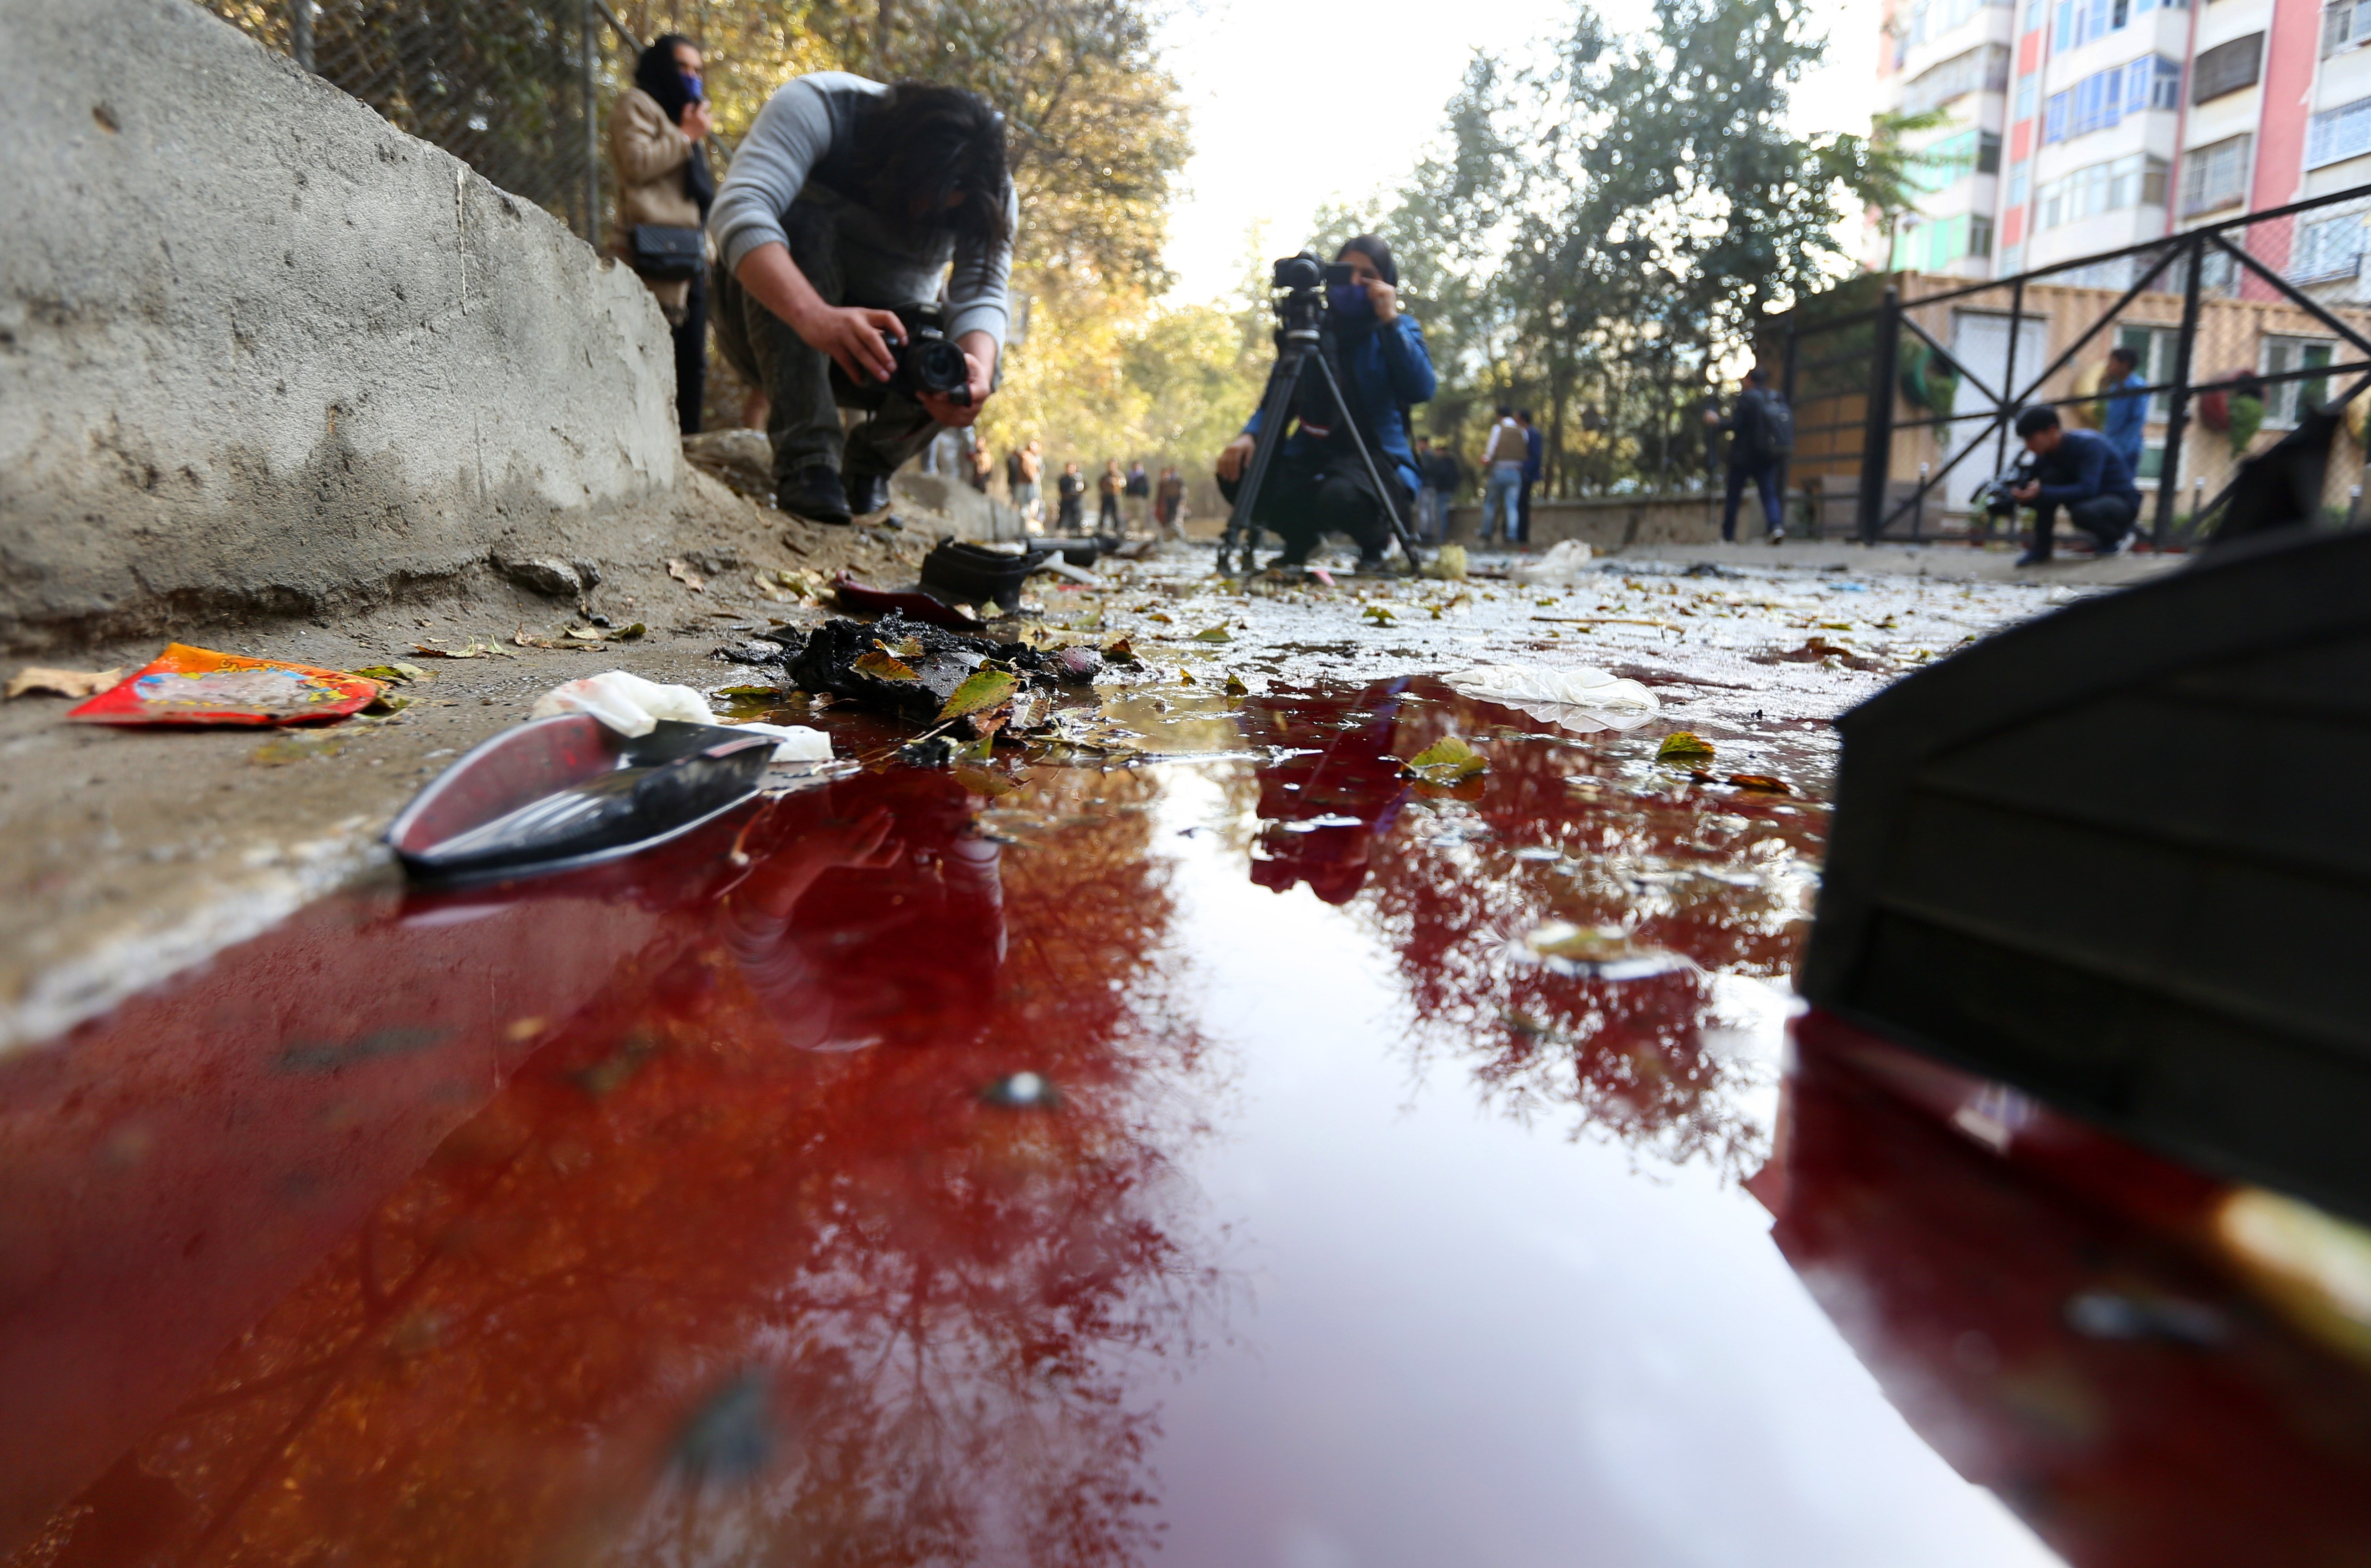 A journalist films blood on the ground at the scene of an explosion. According to local reports, three people, including former Afghan local TV journalist Yama Siawash, were killed in the blast, Kabul, Afghanistan, Nov. 7, 2020. (EPA Photo)